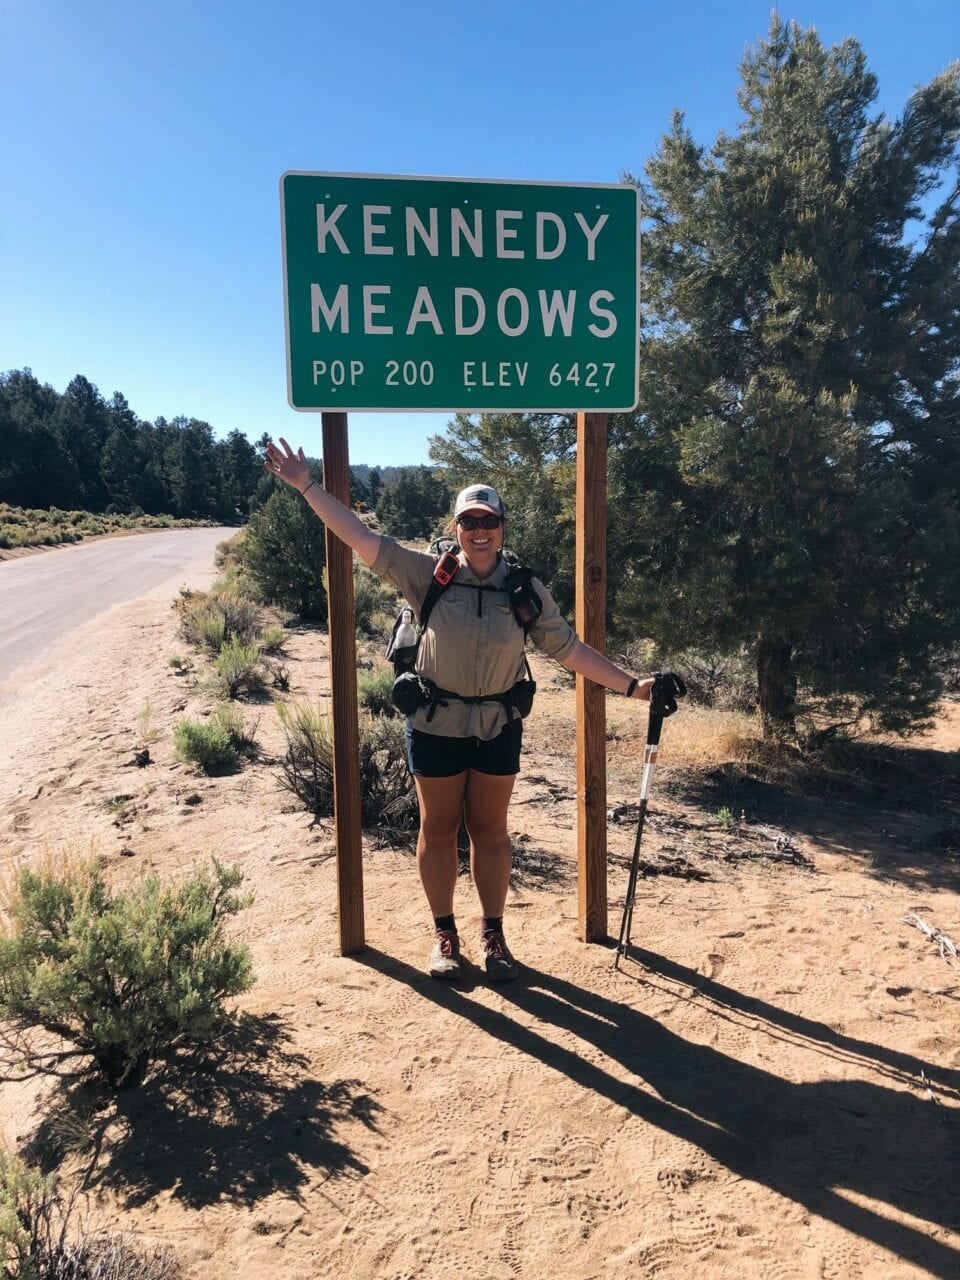 A woman stands next to a Kennedy Meadows sign with her hiking backpack and trekking poles.